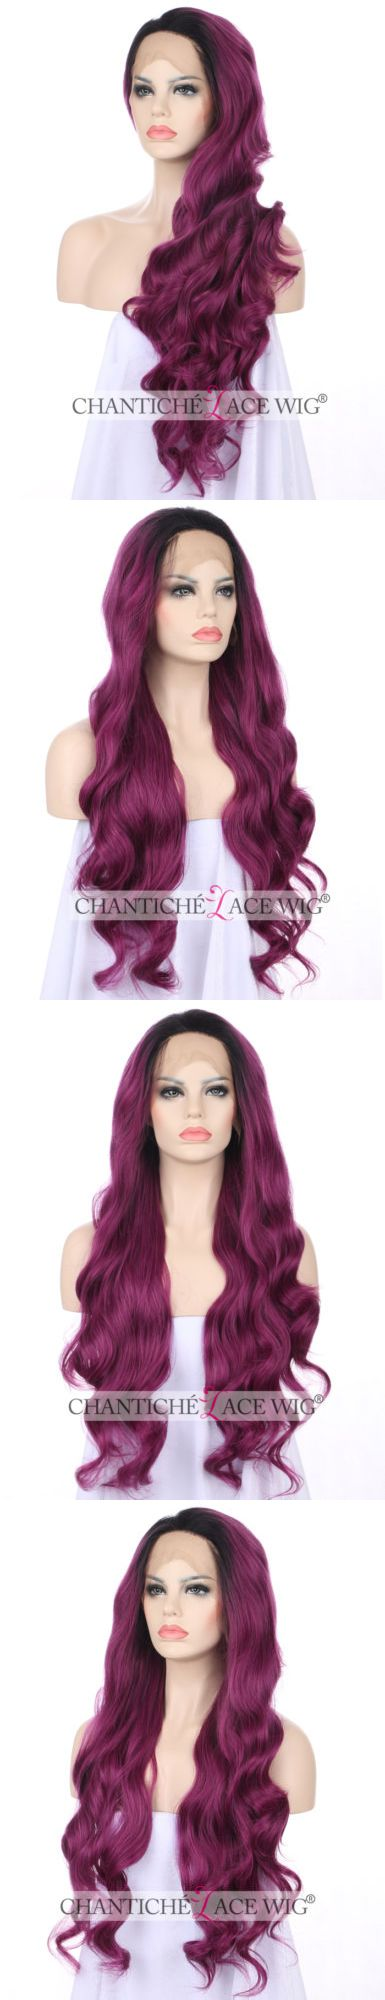 Wigs and Hairpieces: Purple Long Wavy Synthetic Hair Lace Front Wigs For Women Best Heat Friendly Wig -> BUY IT NOW ONLY: $42.99 on eBay!